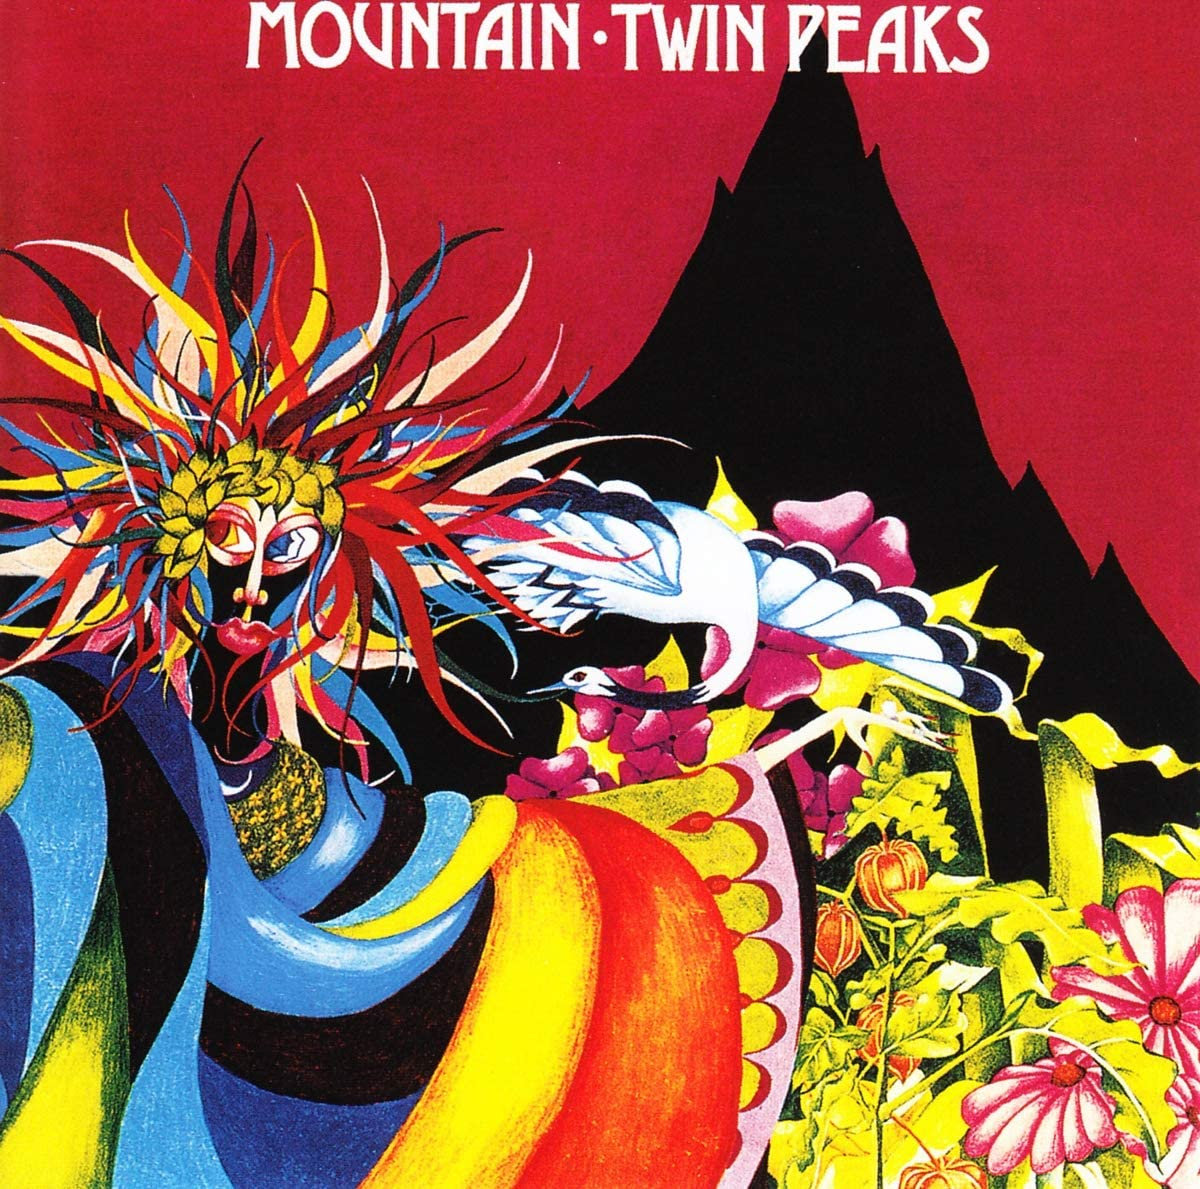 Twin Peaks by Mountain: Amazon.co.uk: Music